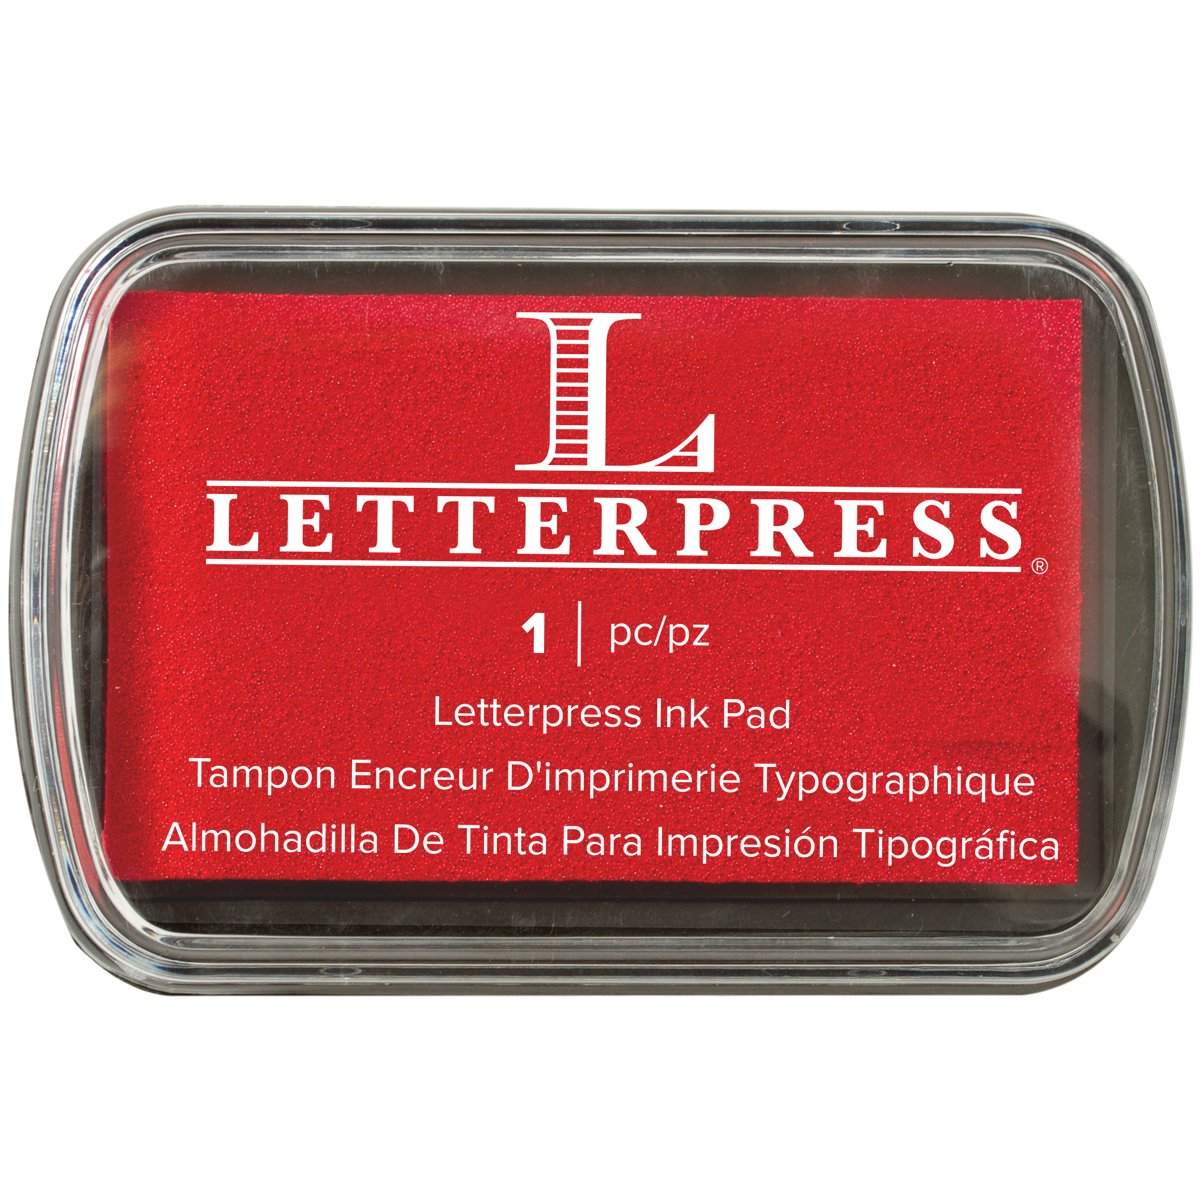 We R Memory Keepers Letterpress Tampone per inchiostro, colore: rosso 512469